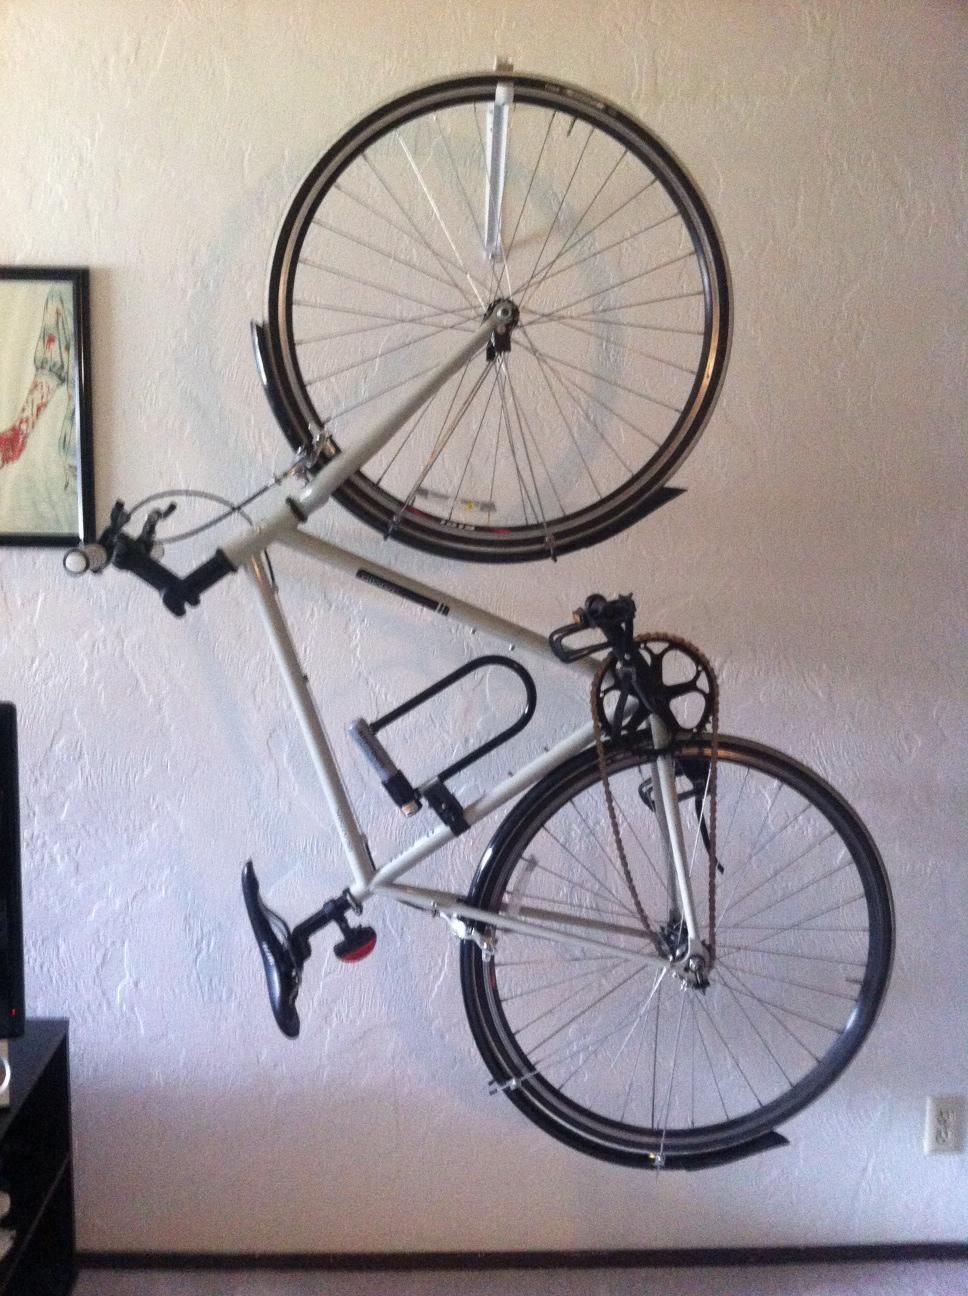 Wall Mounted Bike Rack That Allows Bike To Be Vertical And